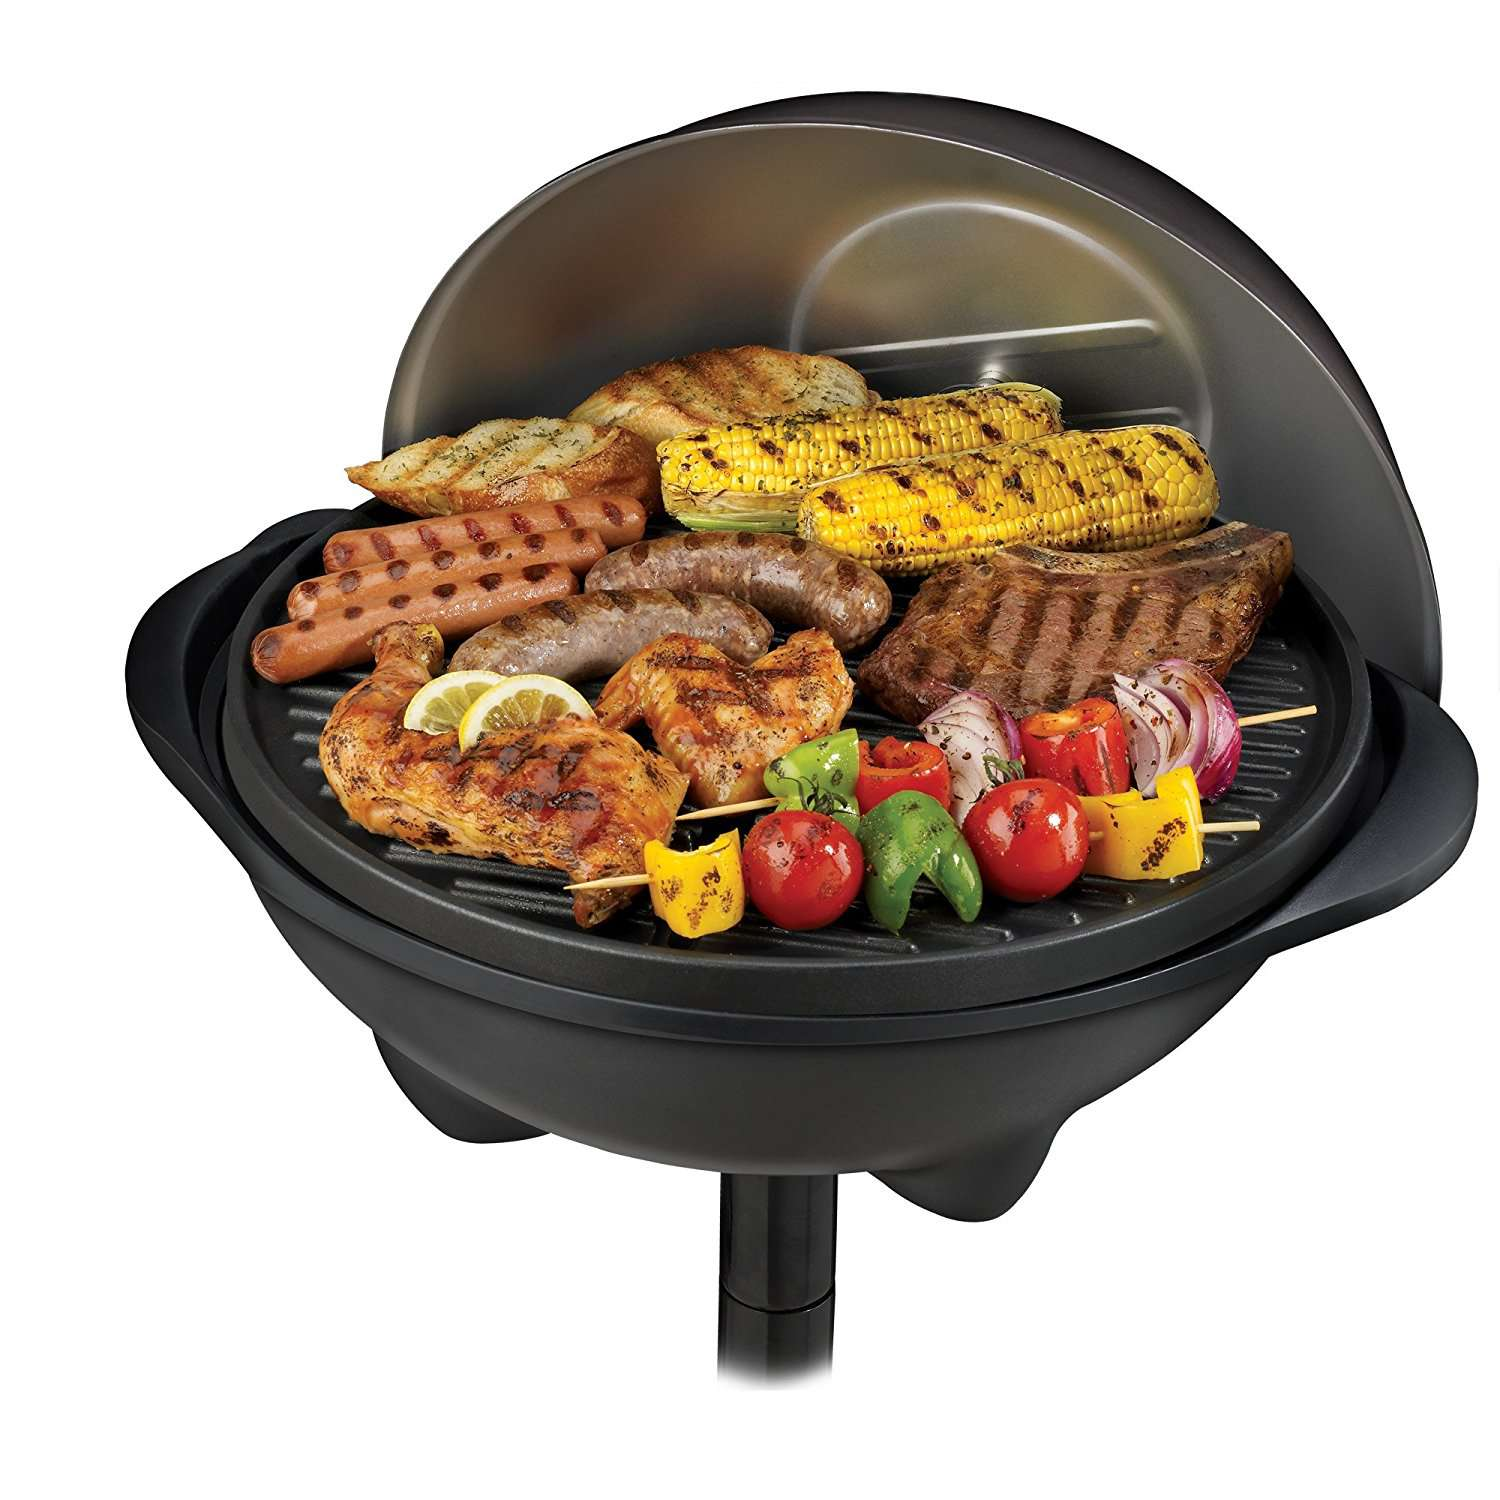 b pedestal heat base grills bbq galore delta carts smokers barbeques front docks grill open